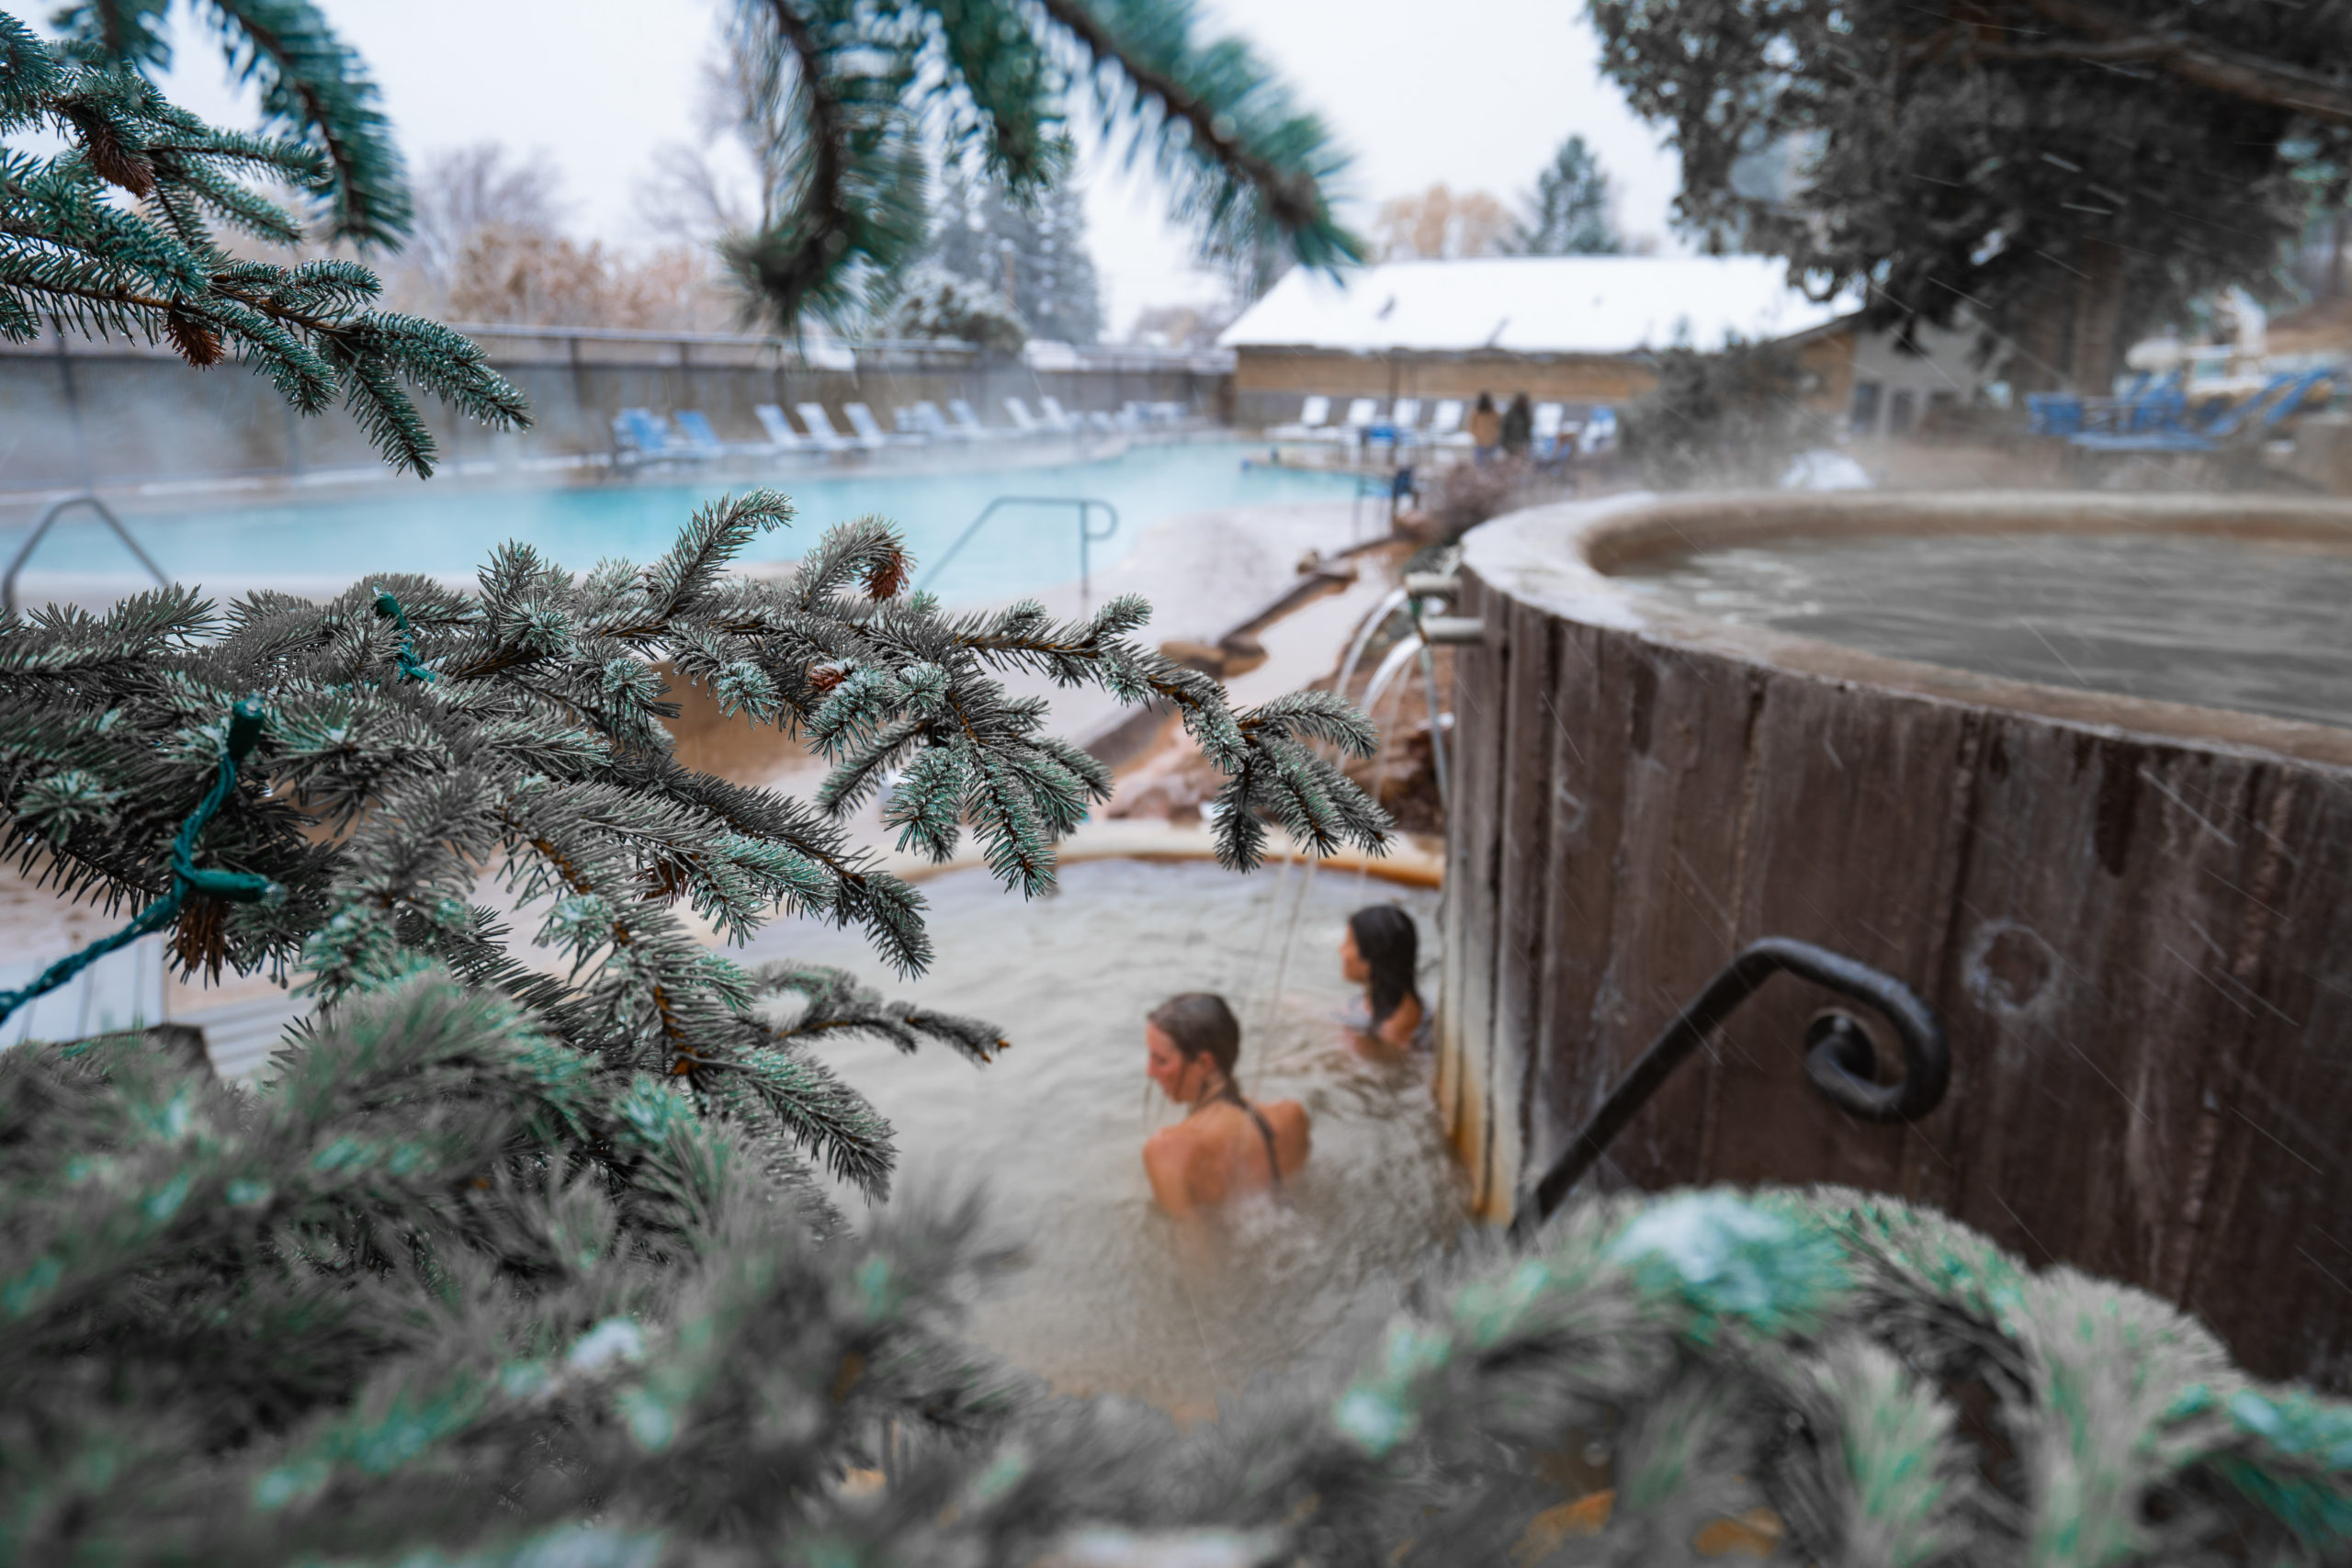 durango hot springs winter sports recovery